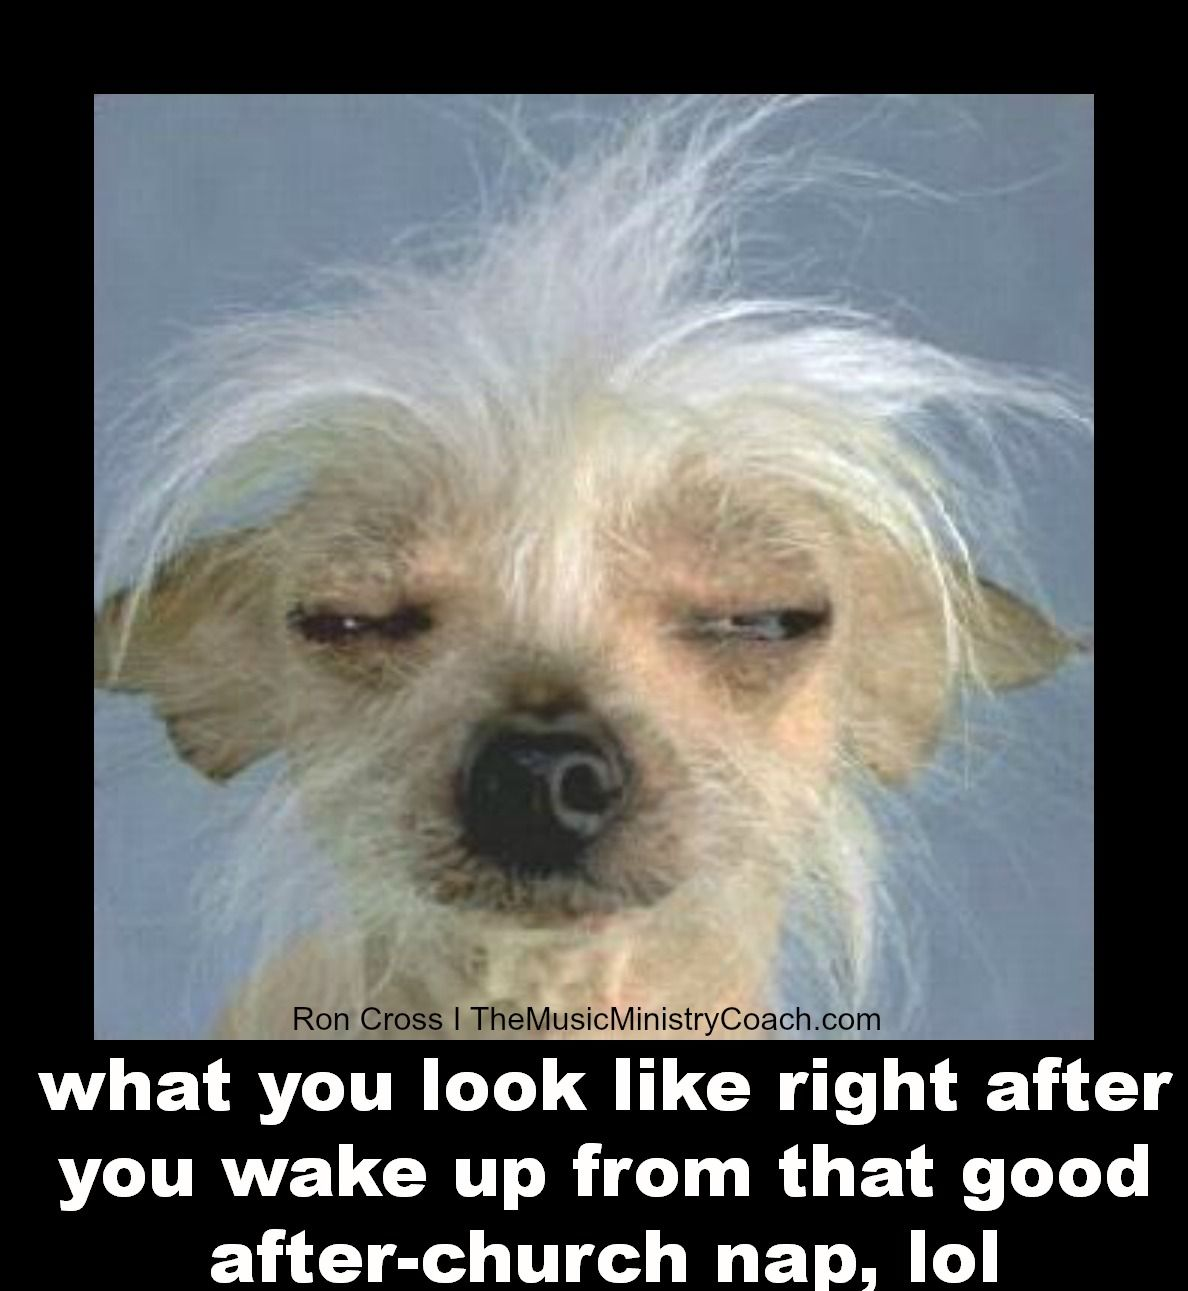 Or that u was dog tired going to bed and slept that good